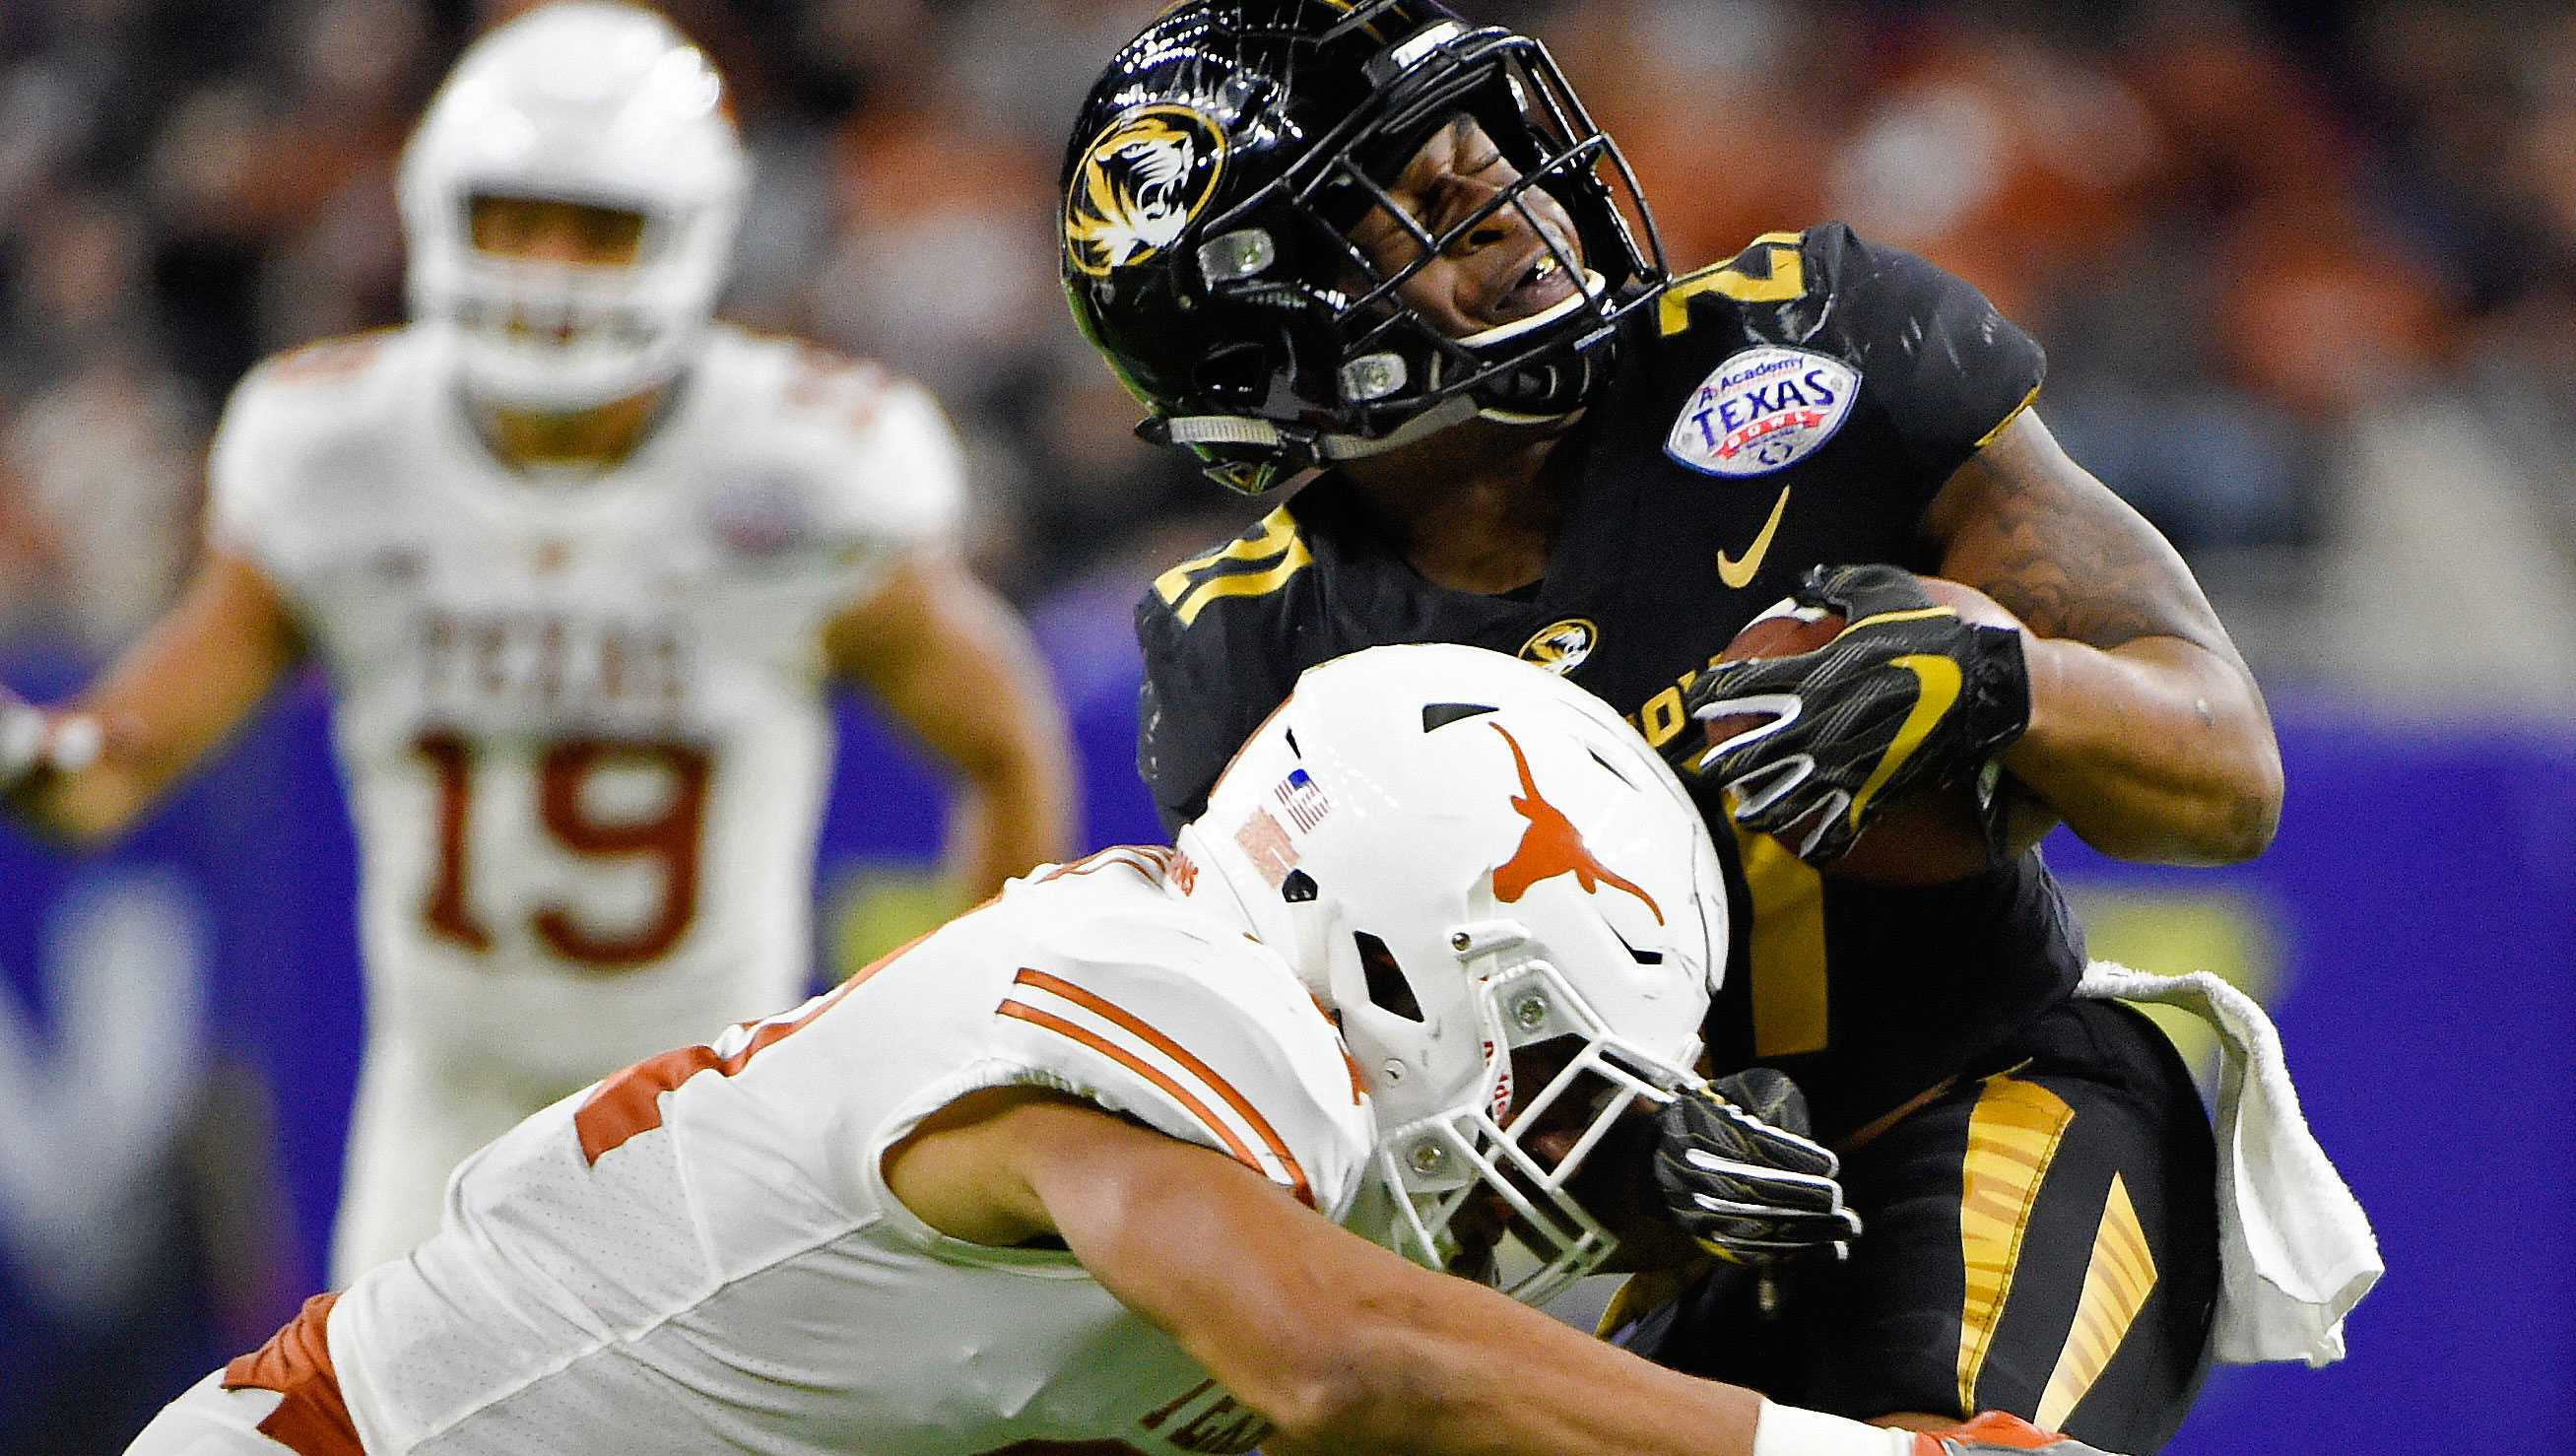 Missouri running back Ish Witter, right, is hit by Texas defensive back Jason Hall during the first half of the Texas Bowl NCAA college football game Wednesday, Dec. 27, 2017, in Houston. (AP Photo/Eric Christian Smith)